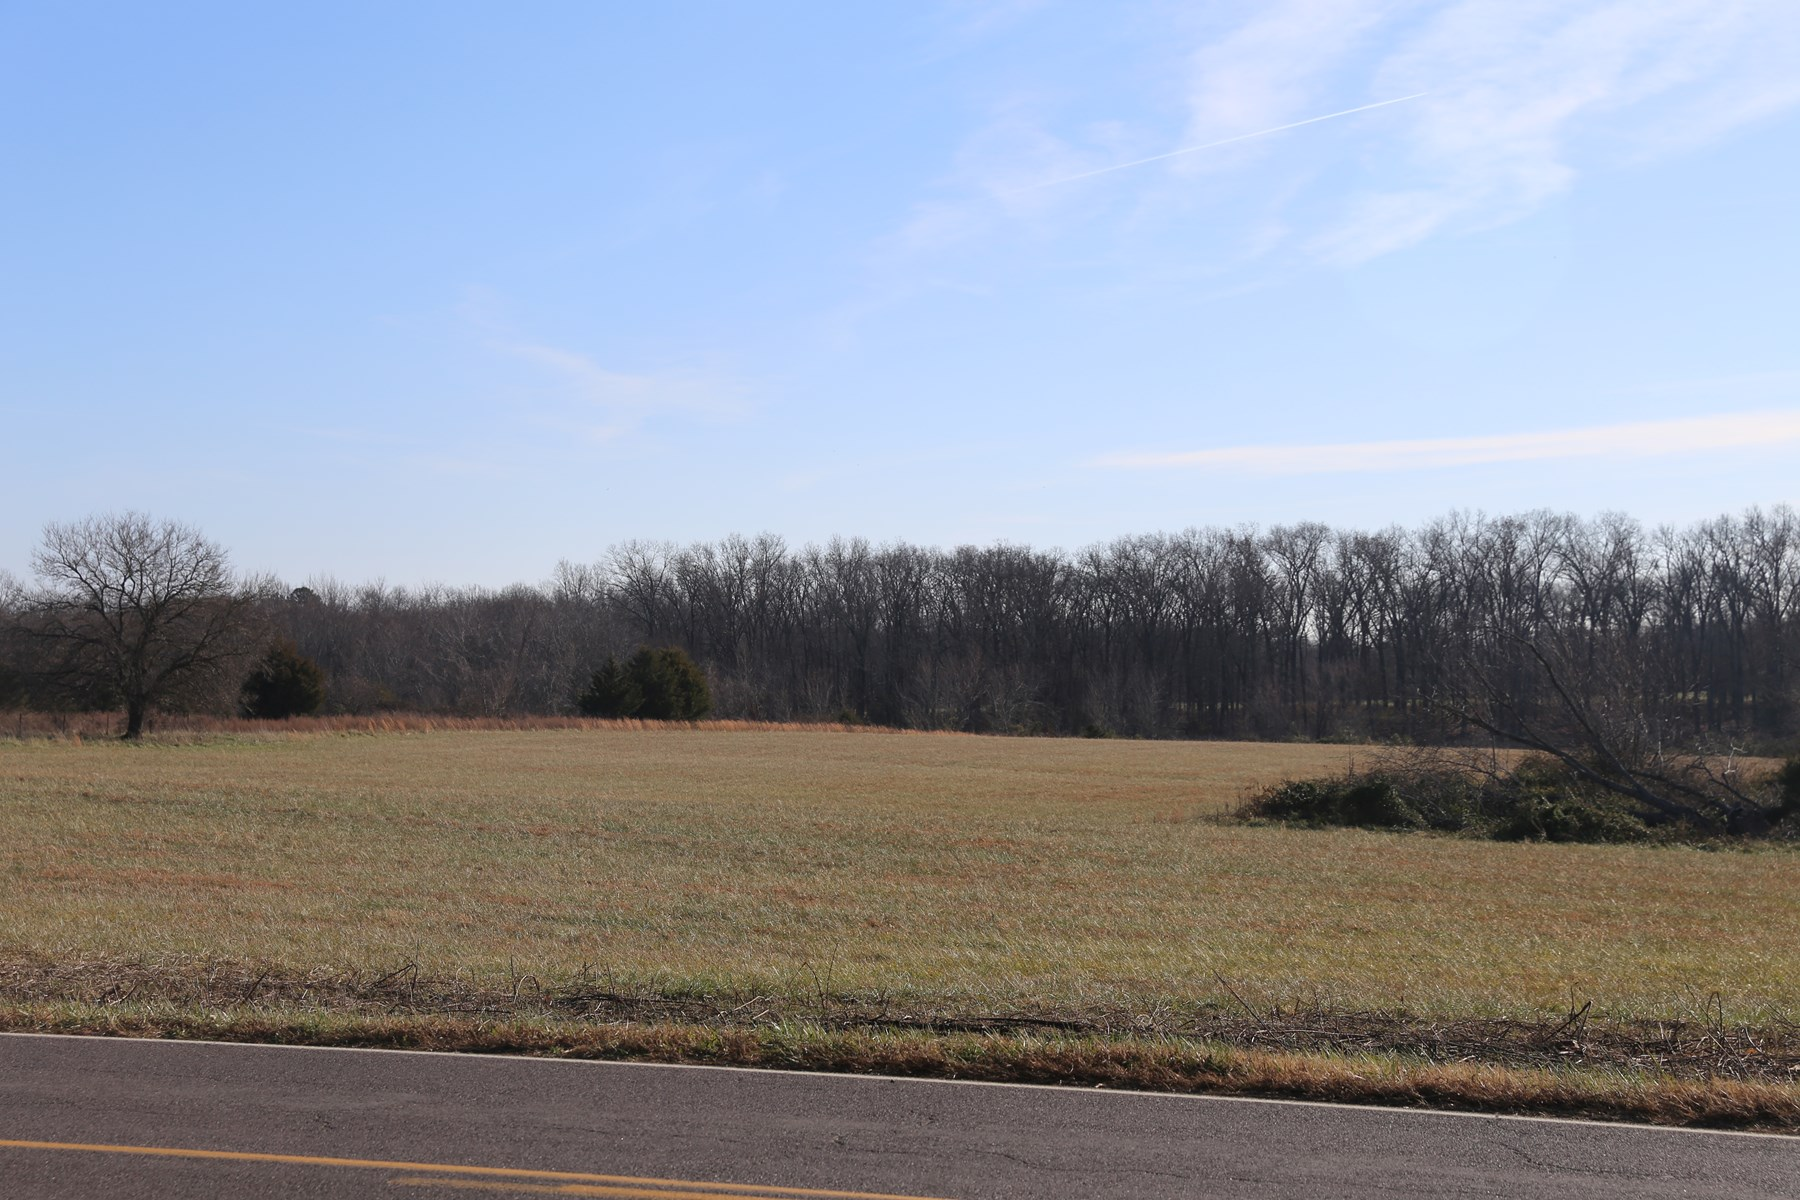 Farm Ground or Development Property for Sale in Pomona, MO.